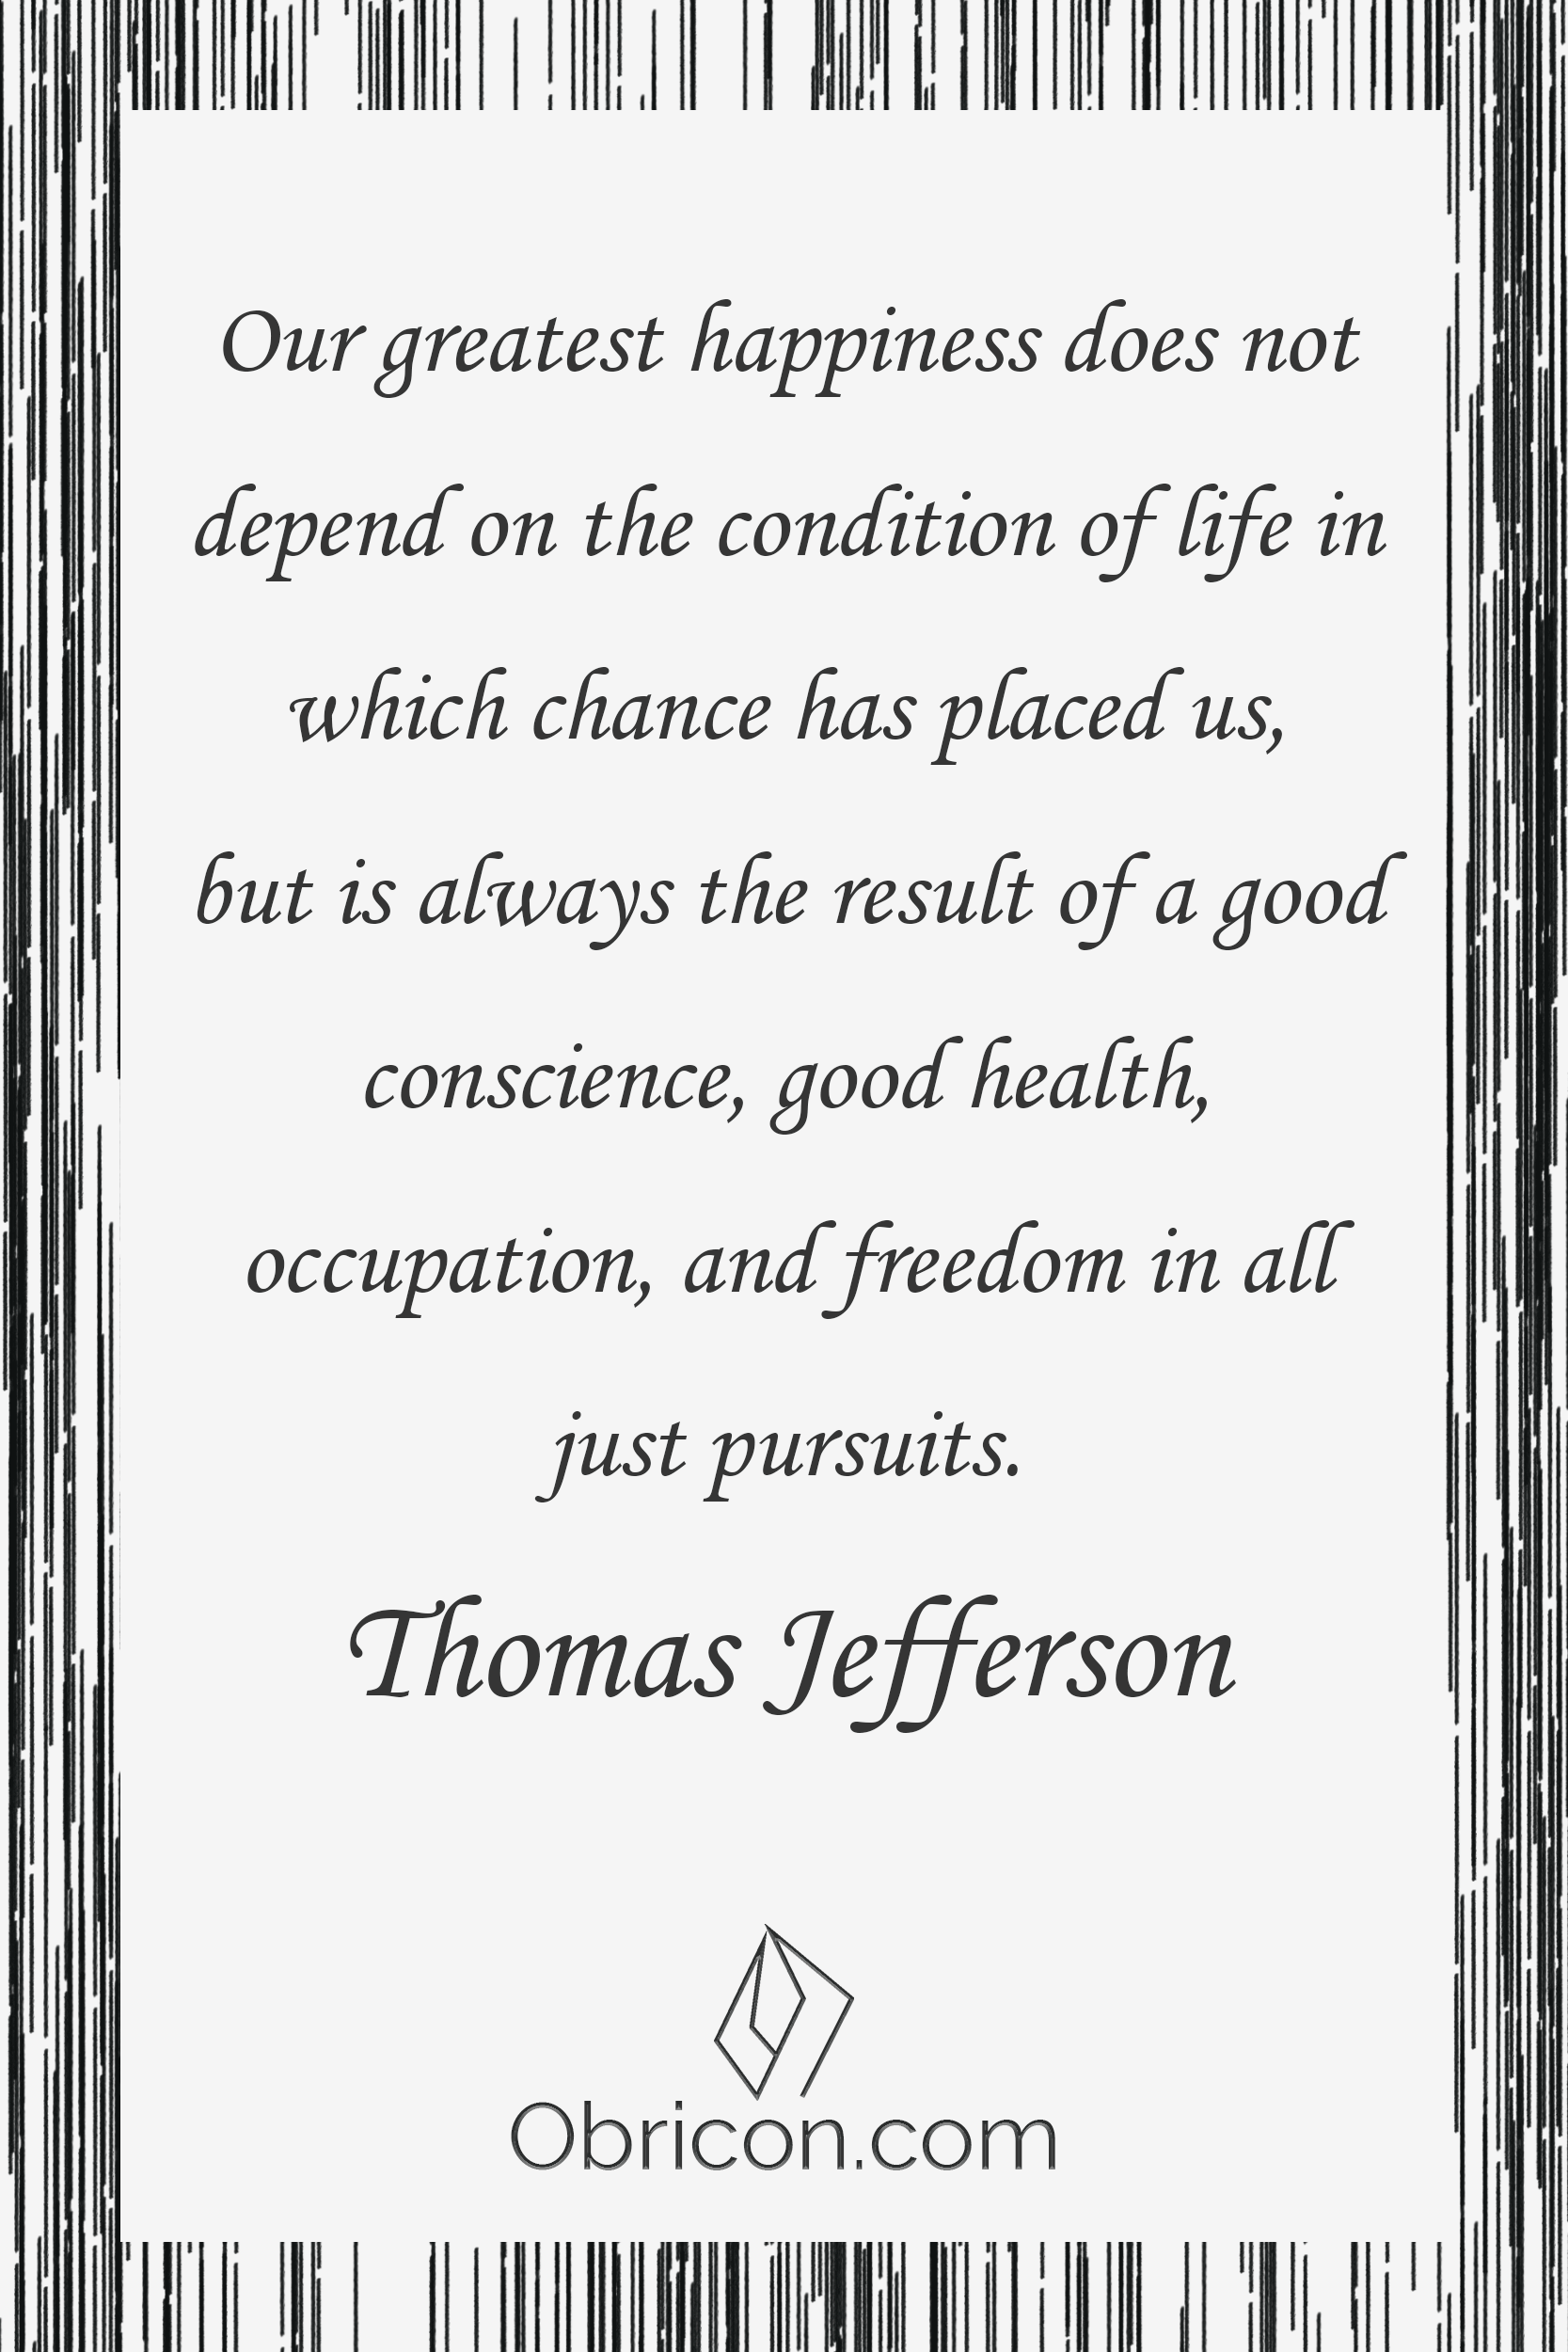 Our greatest happiness does not depend on the condition of life in which chance has placed us, but is always the result of a good conscience, good health, occupation, and freedom in all just pursuits. Thomas Jefferson.png